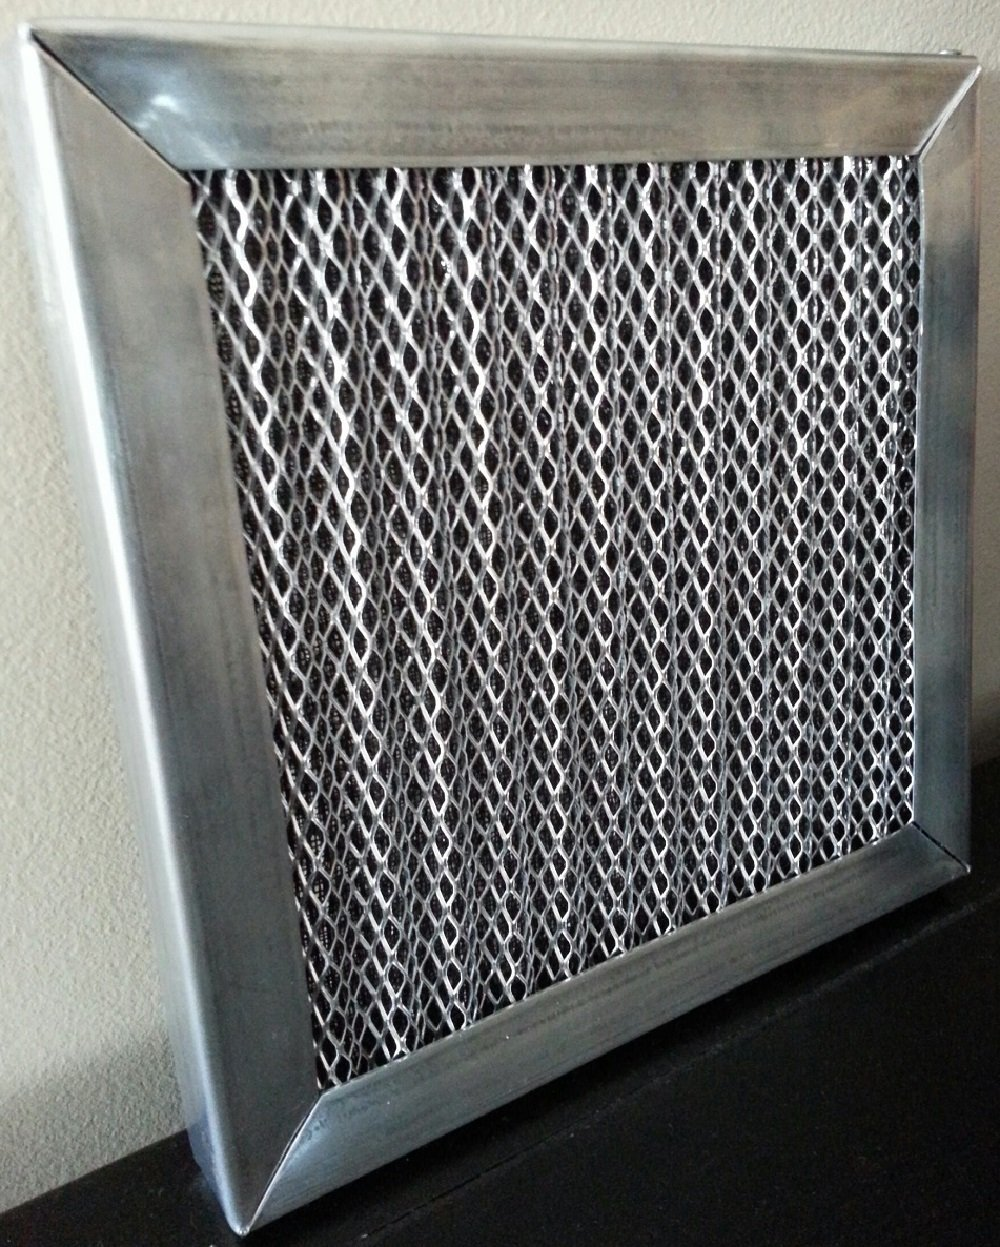 6 STAGE ELECTROSTATIC WASHABLE PERMANENT HOME AIR FILTER Not 5 stage like others STOPS POLLEN DUST ALLERGENS LIFETIME FILTER! (20X24X1)